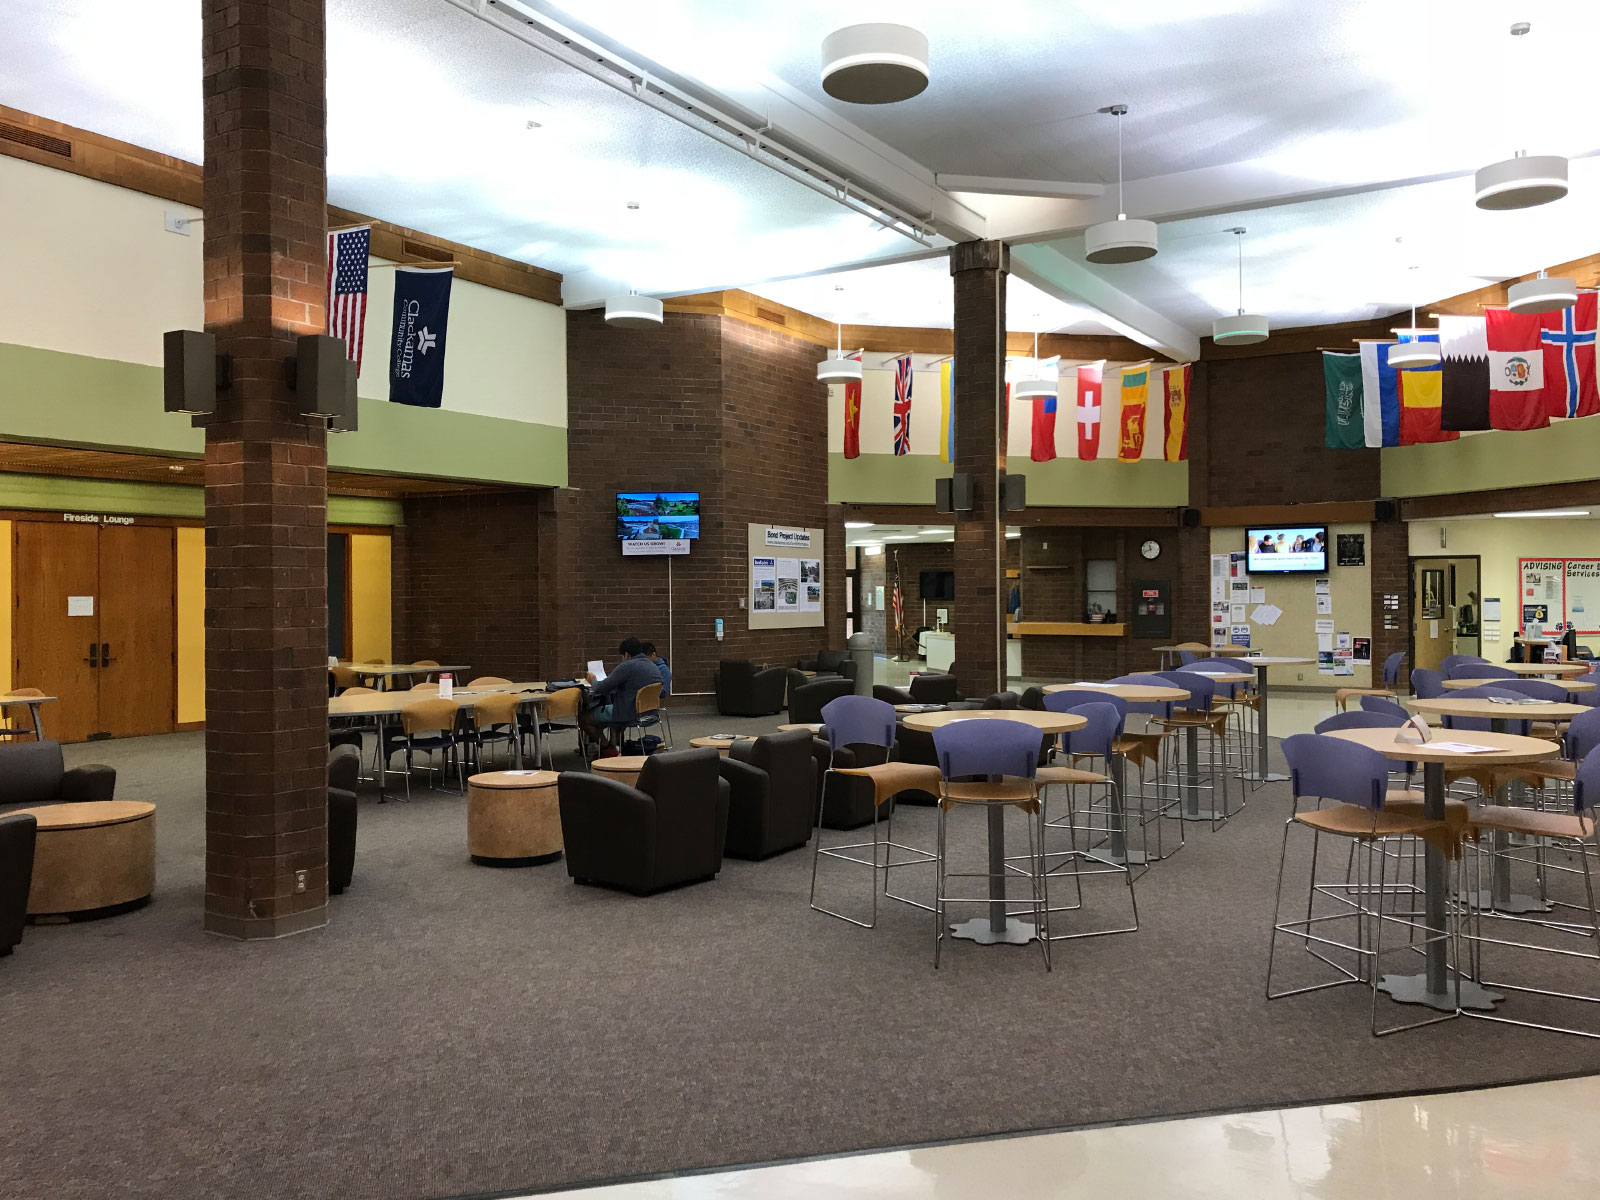 The wide interior with chairs, tables, displays and flags in the Bill Brod Community Center Mall at the Oregon City campus